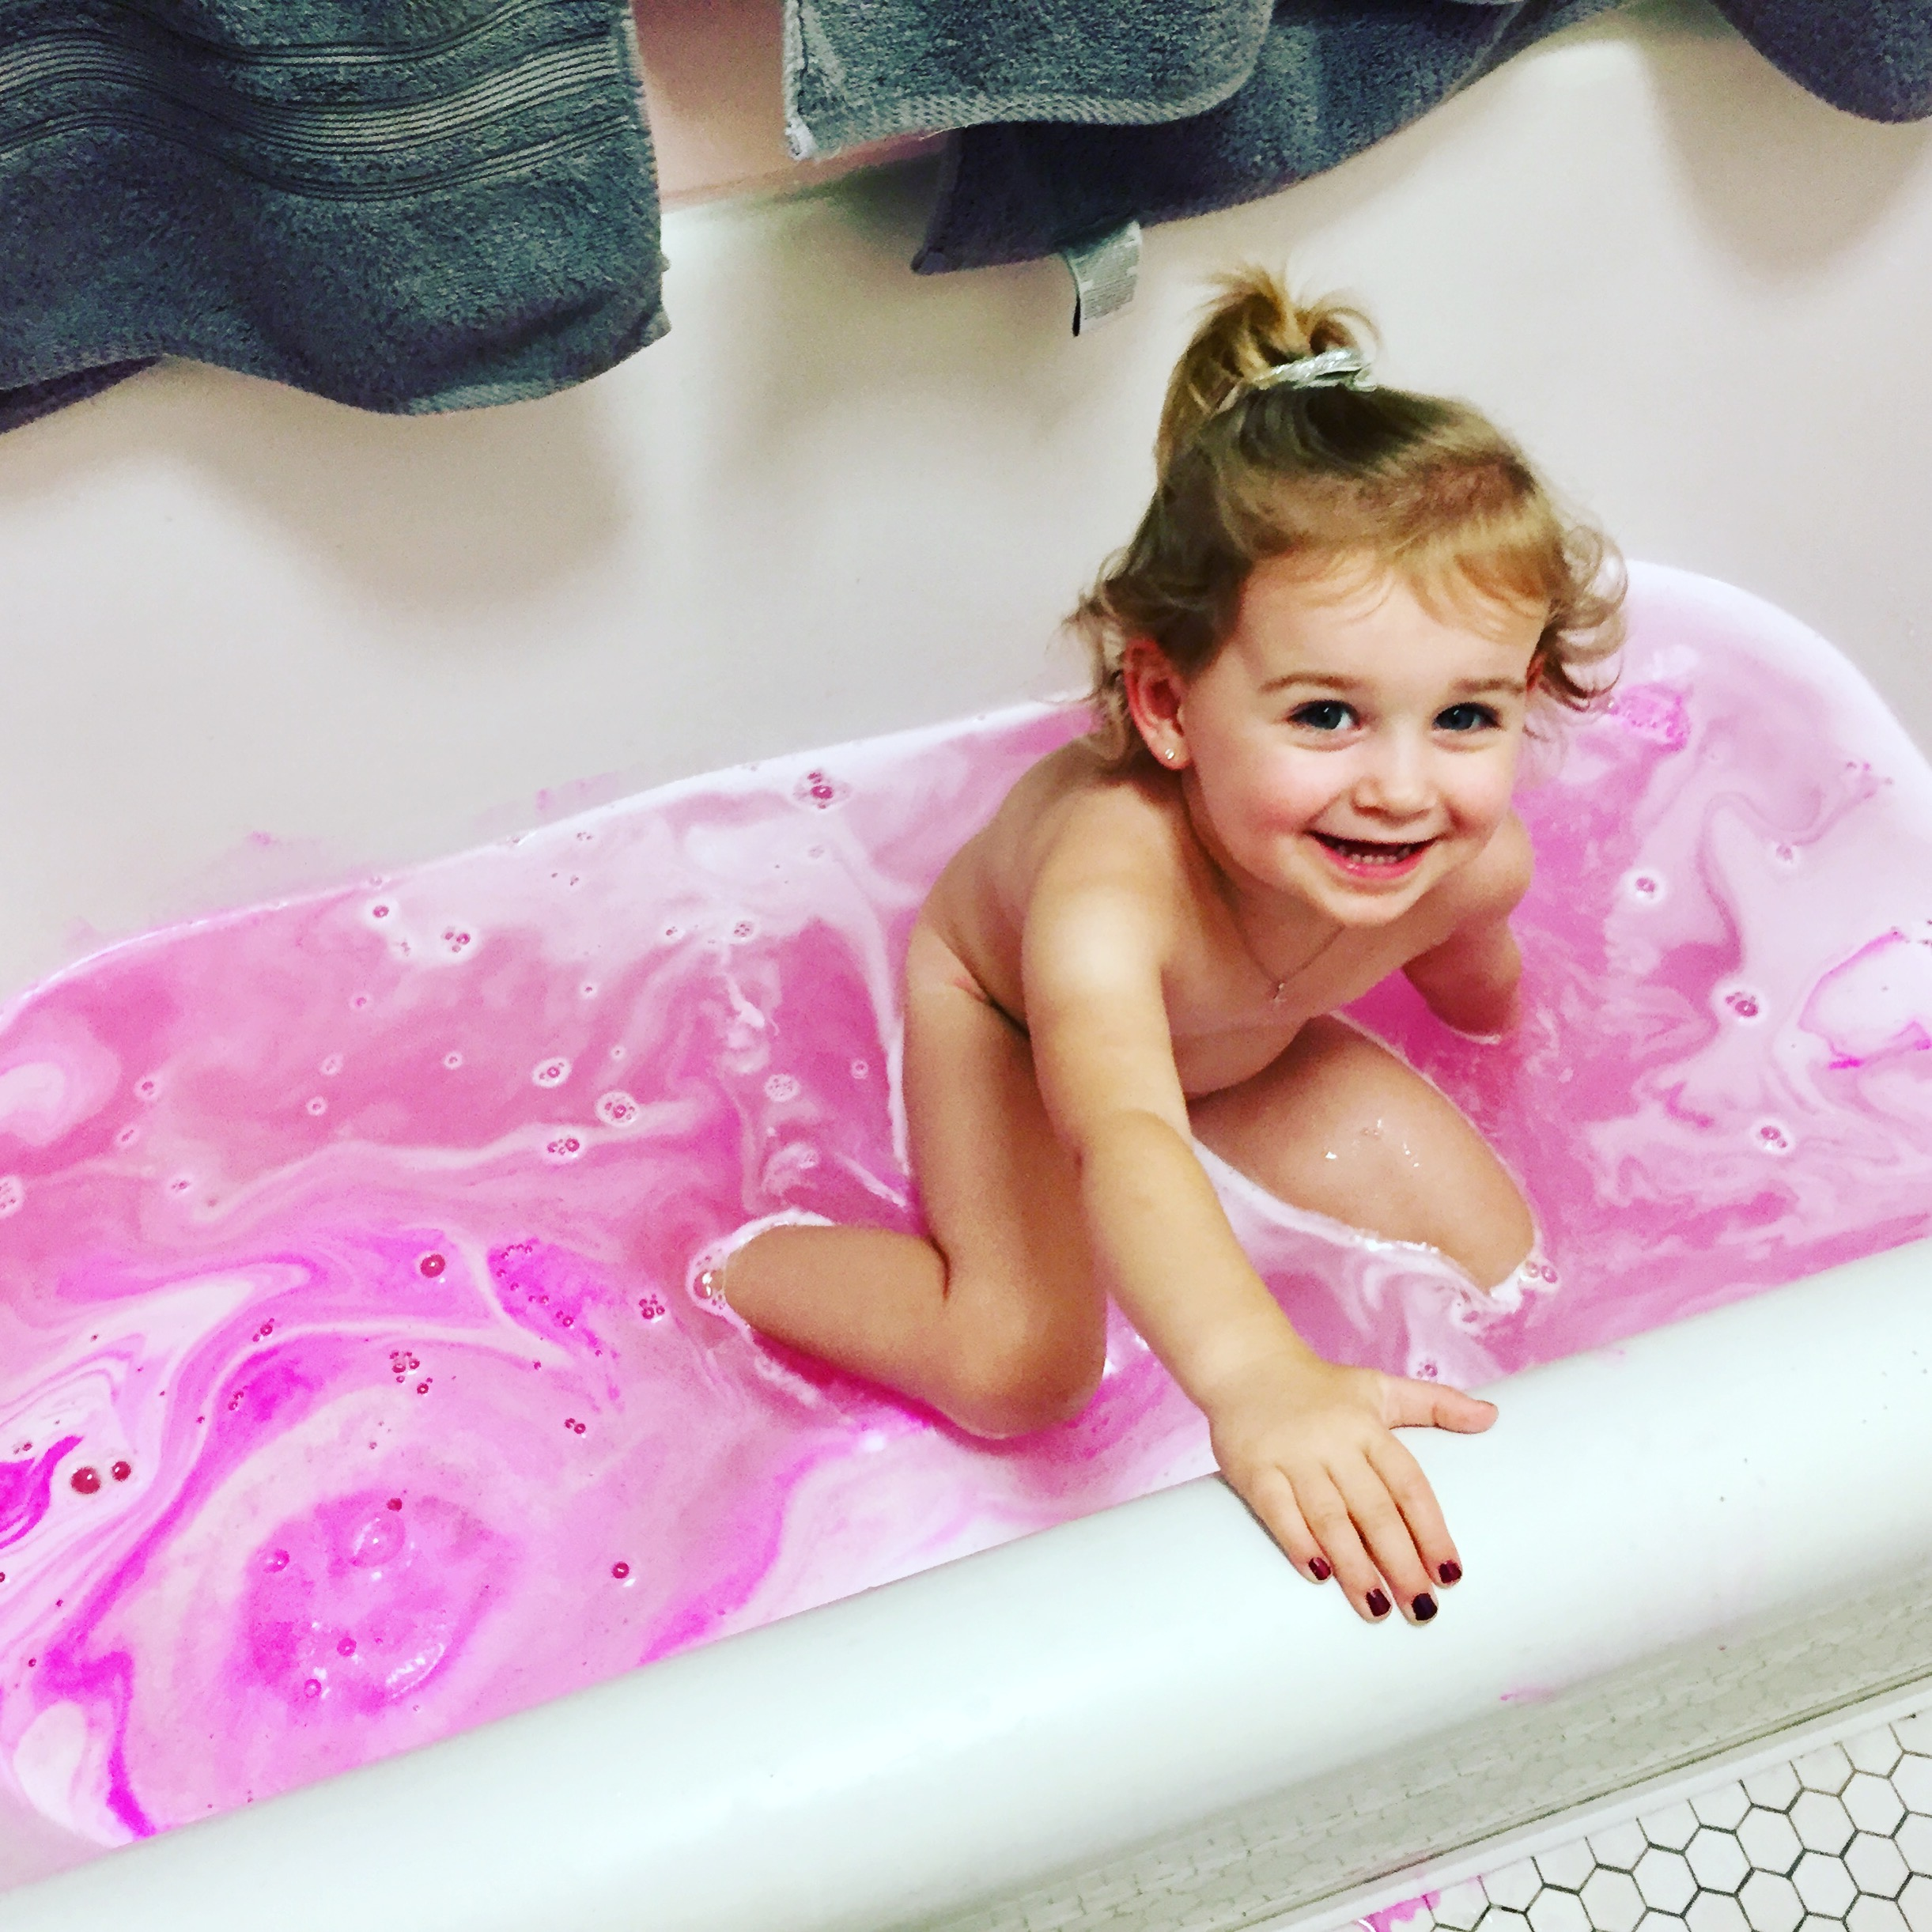 Bath bombs are the new bubbles!